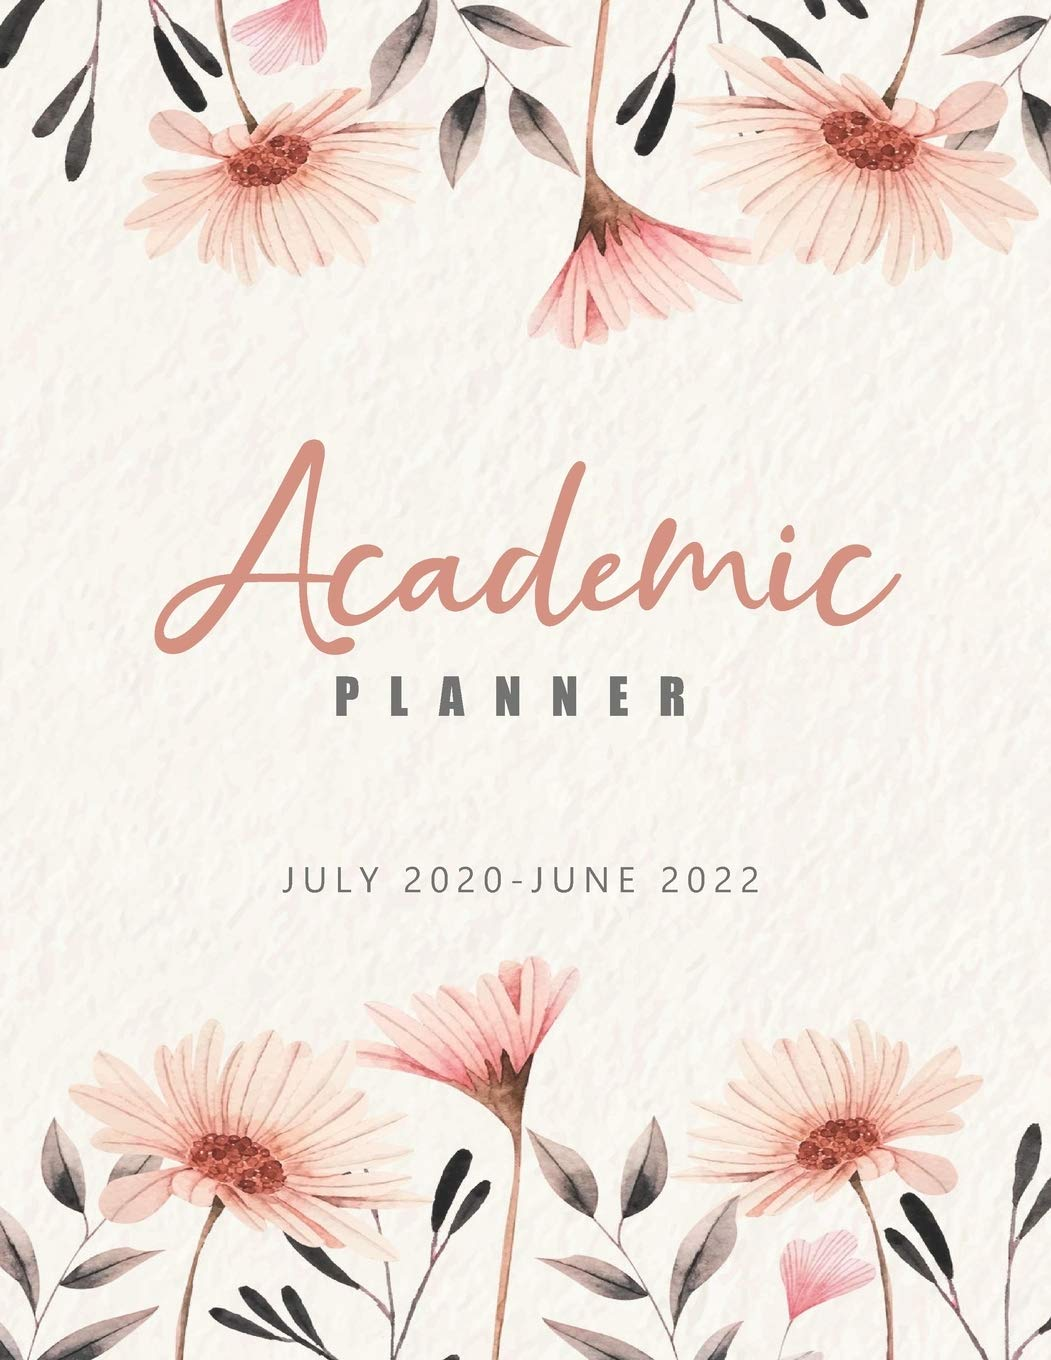 June July Calendar 2022.Academic Planner July 2020 June 2022 Elegant Flowers 24 Months Academic Calendar Planner Weekly Academic Planner 2020 2022 Appointment Book Daily Diary Supplies Time Management Organizer Amazon In Planner Journal Aria Books